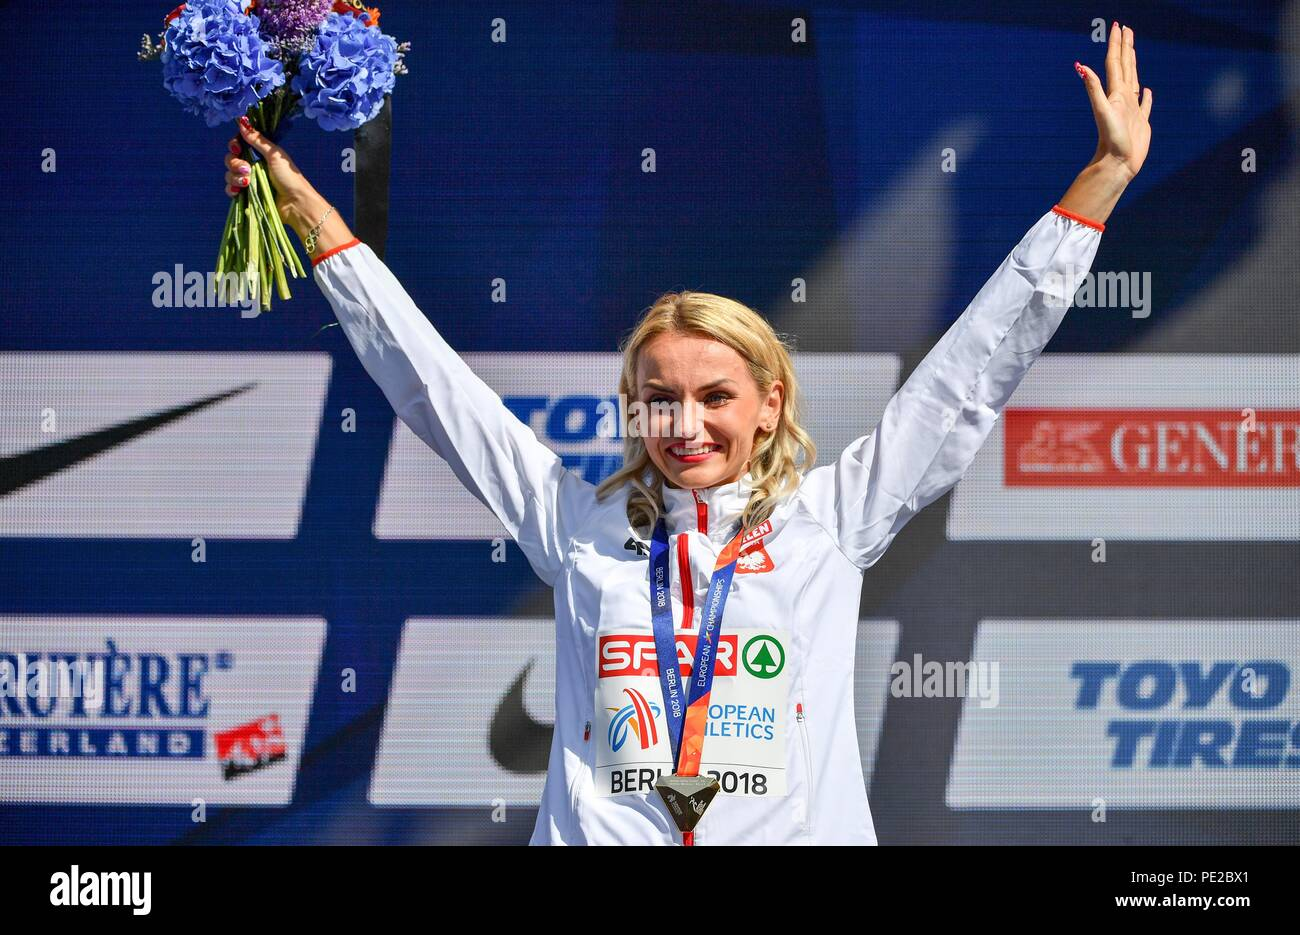 Berlin, Germany. 12th Aug, 2018. 12.08.2018, Berlin: Track and Field, European Championship, Award Ceremony on the European Mile at Breitscheidplatz: 400 meters, Women: Gold medal winner Justyna Swiety-Ersetic from Poland. Credit: Bernd Thissen/dpa/Alamy Live News - Stock Image